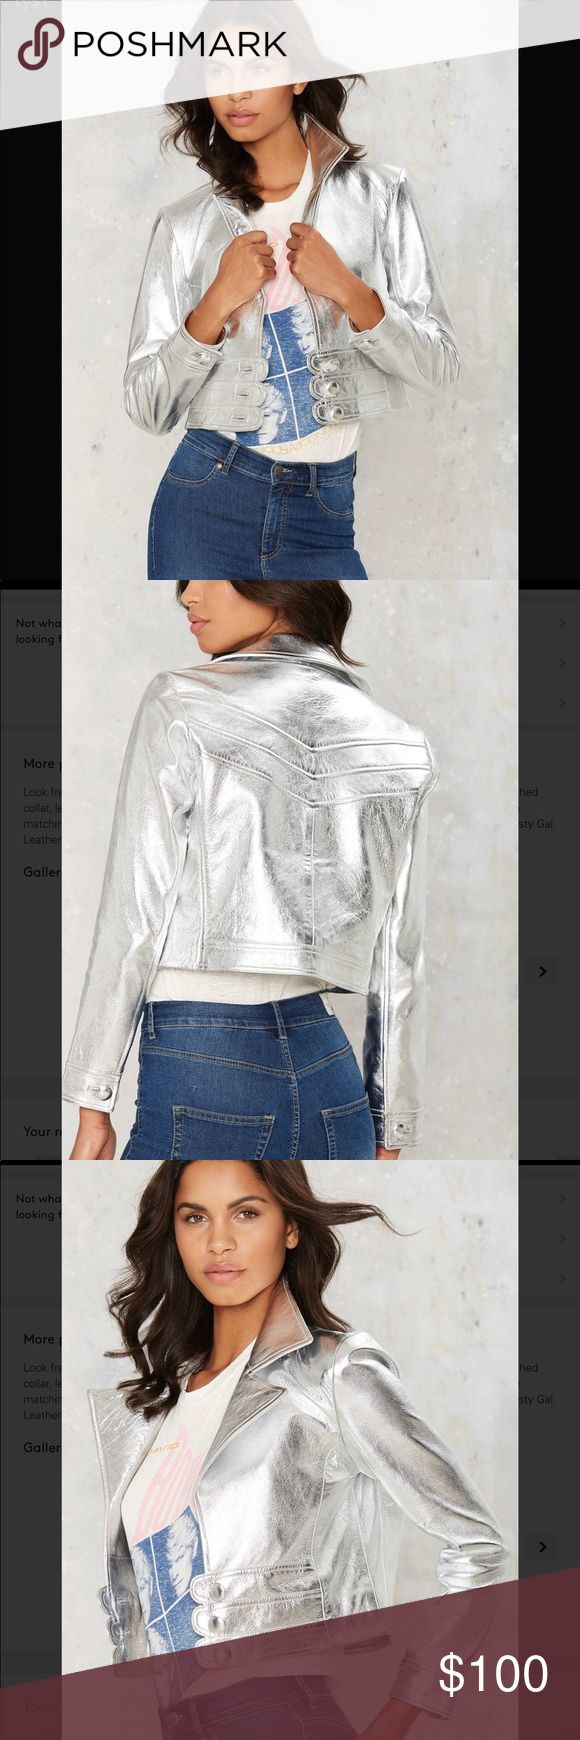 6💛nasty gal jerry Metallic leather jacket Look fresh out of the Factory. The Jerry Jacket is made in metallic silver leather and features a notched collar, leather panels with button closures at front, and button at sleeves. Fully lined. Pair it with the matching Jerry Skirt for full effect or wear it with wide leg pants for an equally amazing look. By Nasty Gal. Leather. Runs true to size. Dry clean only. California Residents: Proposition 65. Color: metallic Nasty Gal Jackets & Coats…